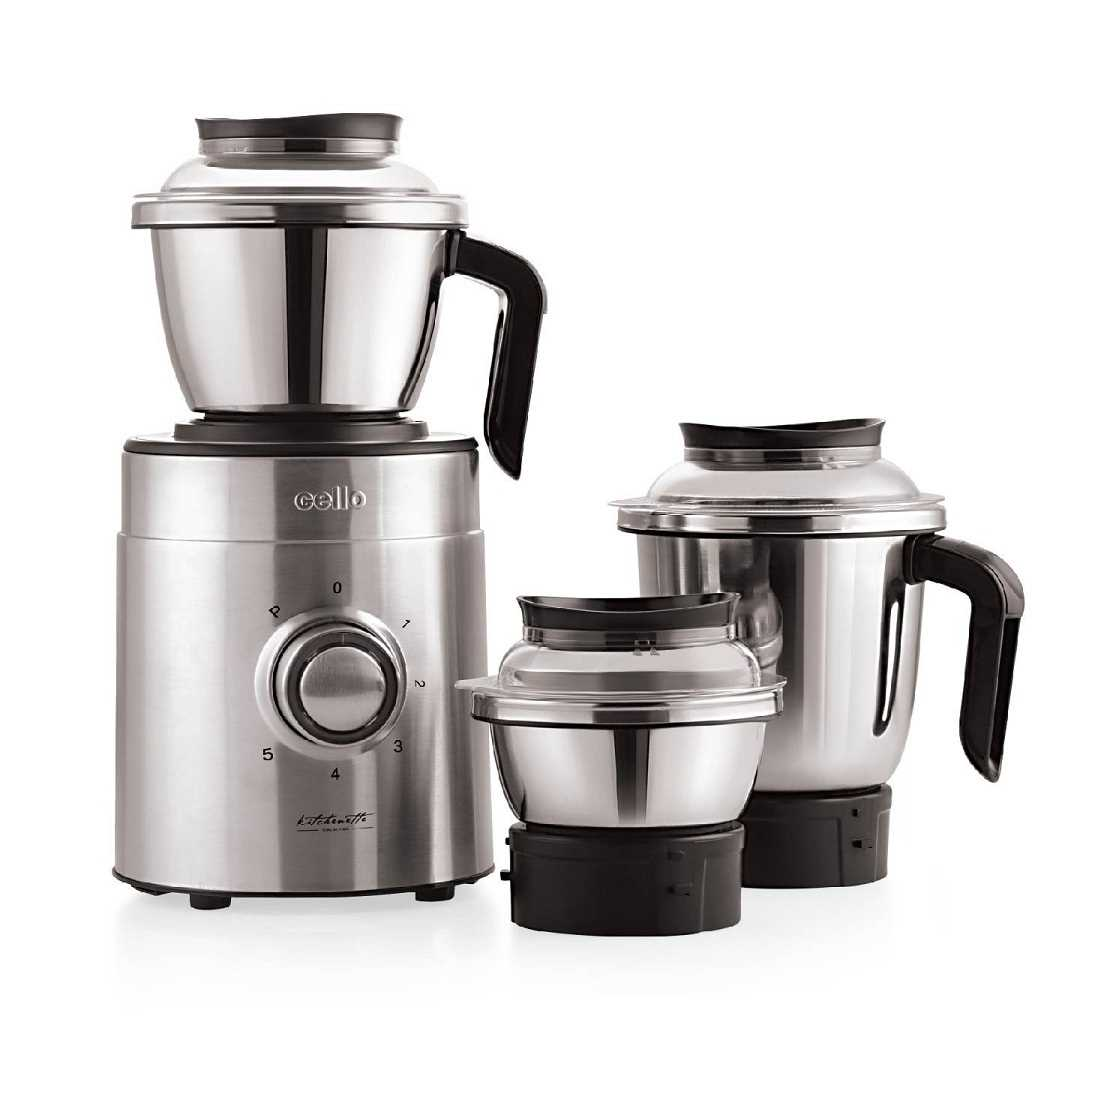 Cello Grind-N-Mix 1100 Ultra 850 W Mixer Grinder